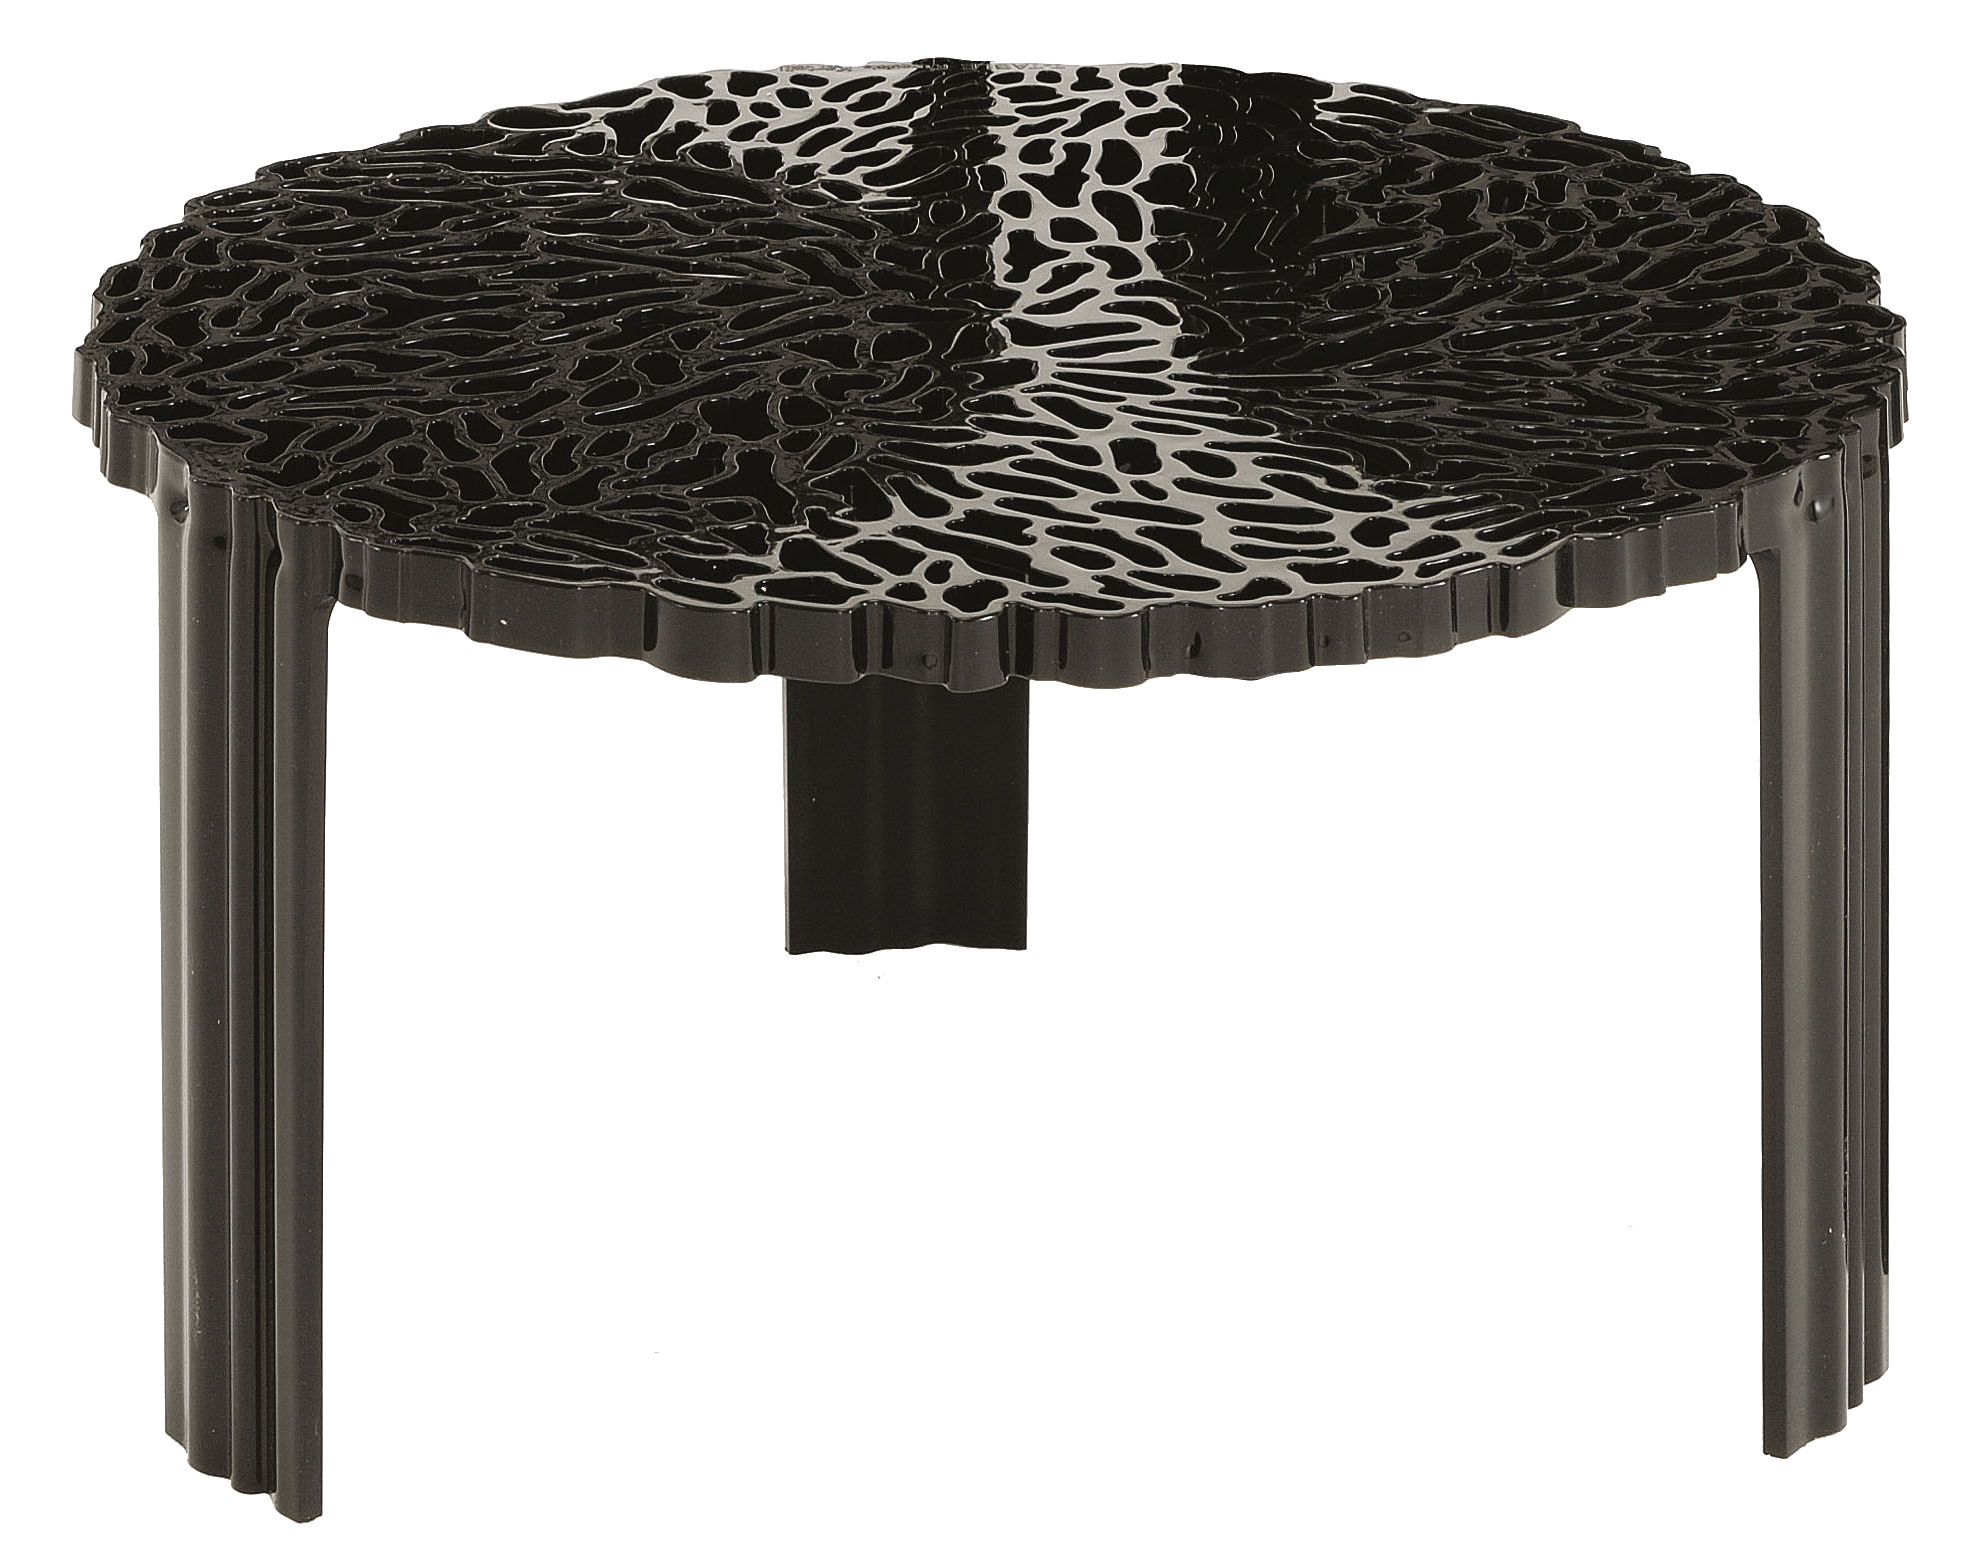 Mobilier - Tables basses - Table basse T-Table Basso / Ø 50 x H 28 cm - Kartell - Noir opaque - PMMA